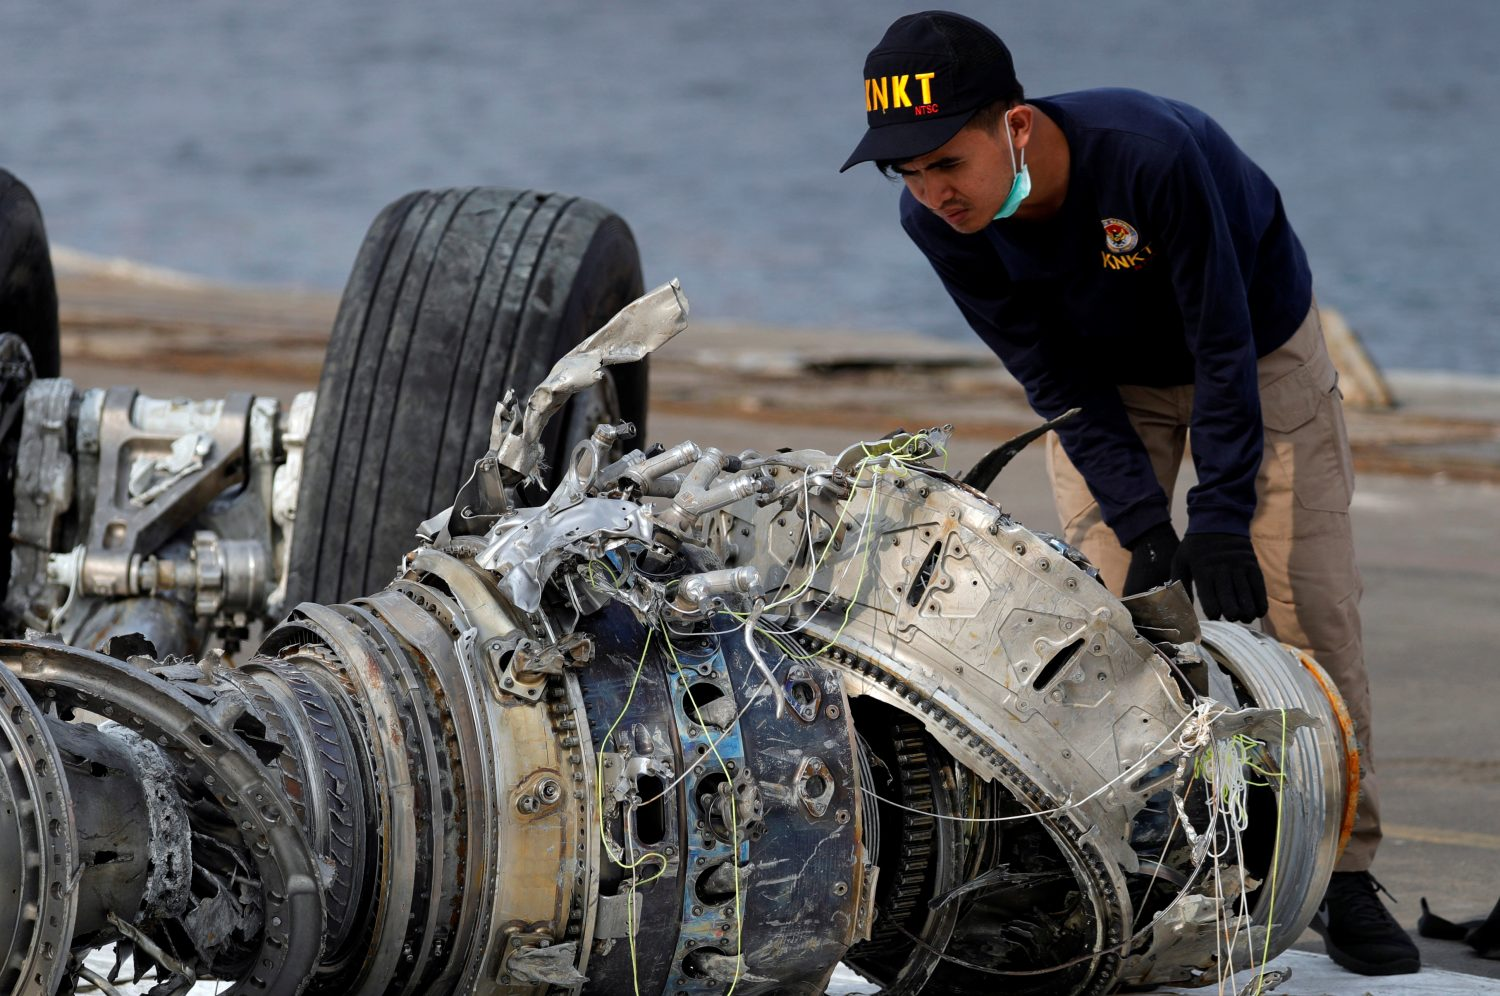 FILE PHOTO: An Indonesian National Transportation Safety Commission (KNKT) official examines a turbine engine from the Lion Air flight JT610 at Tanjung Priok port in Jakarta, Indonesia, November 4, 2018. REUTERS/Beawiharta/File Photo